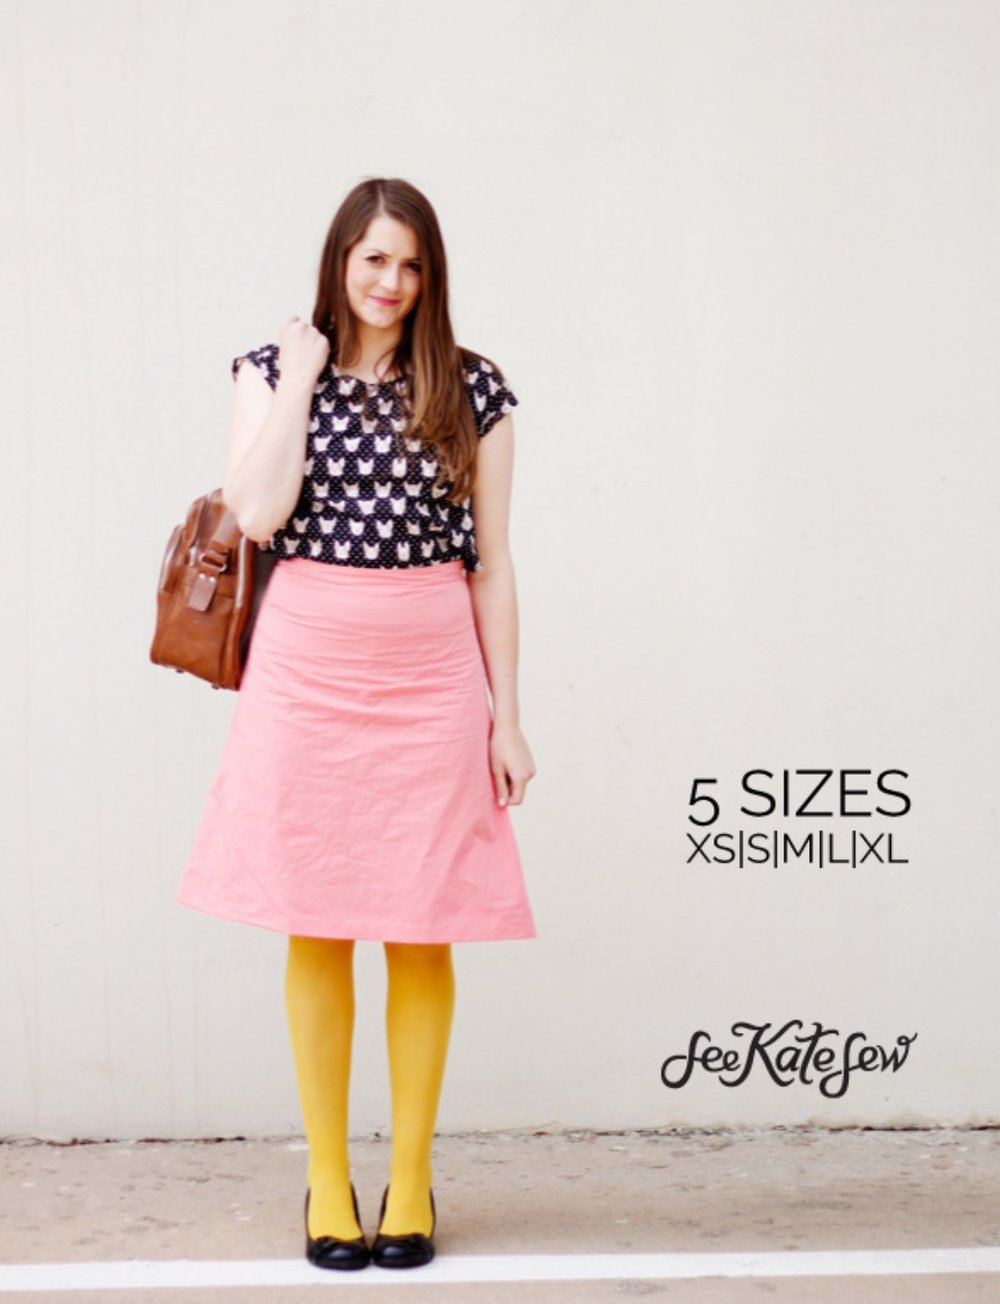 A-line skirt See Kate Sew